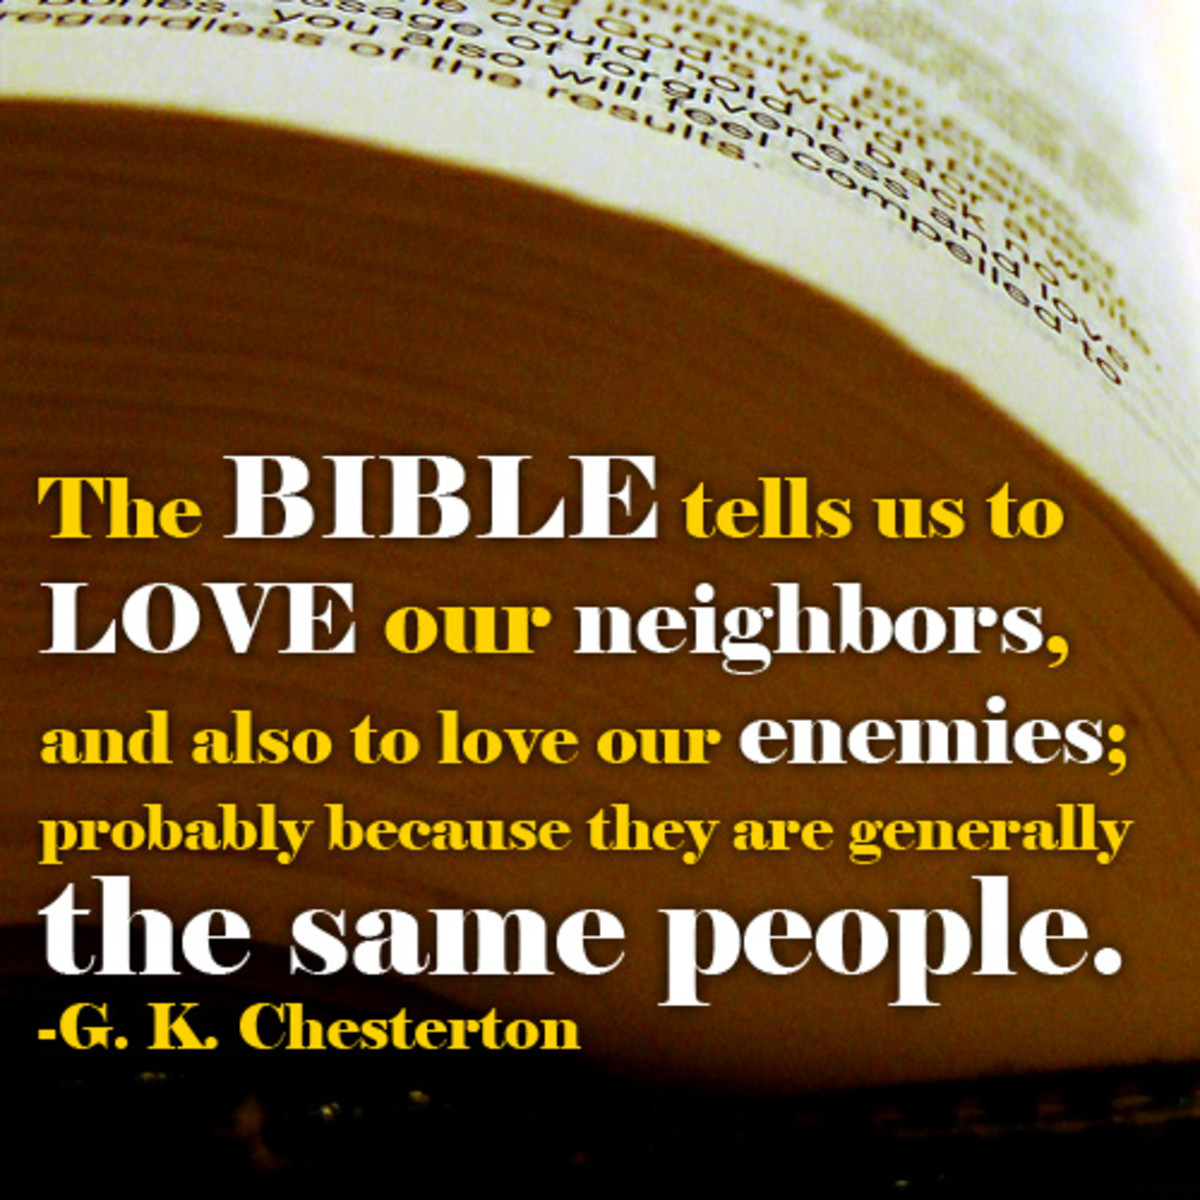 Quote from G K Chesterton